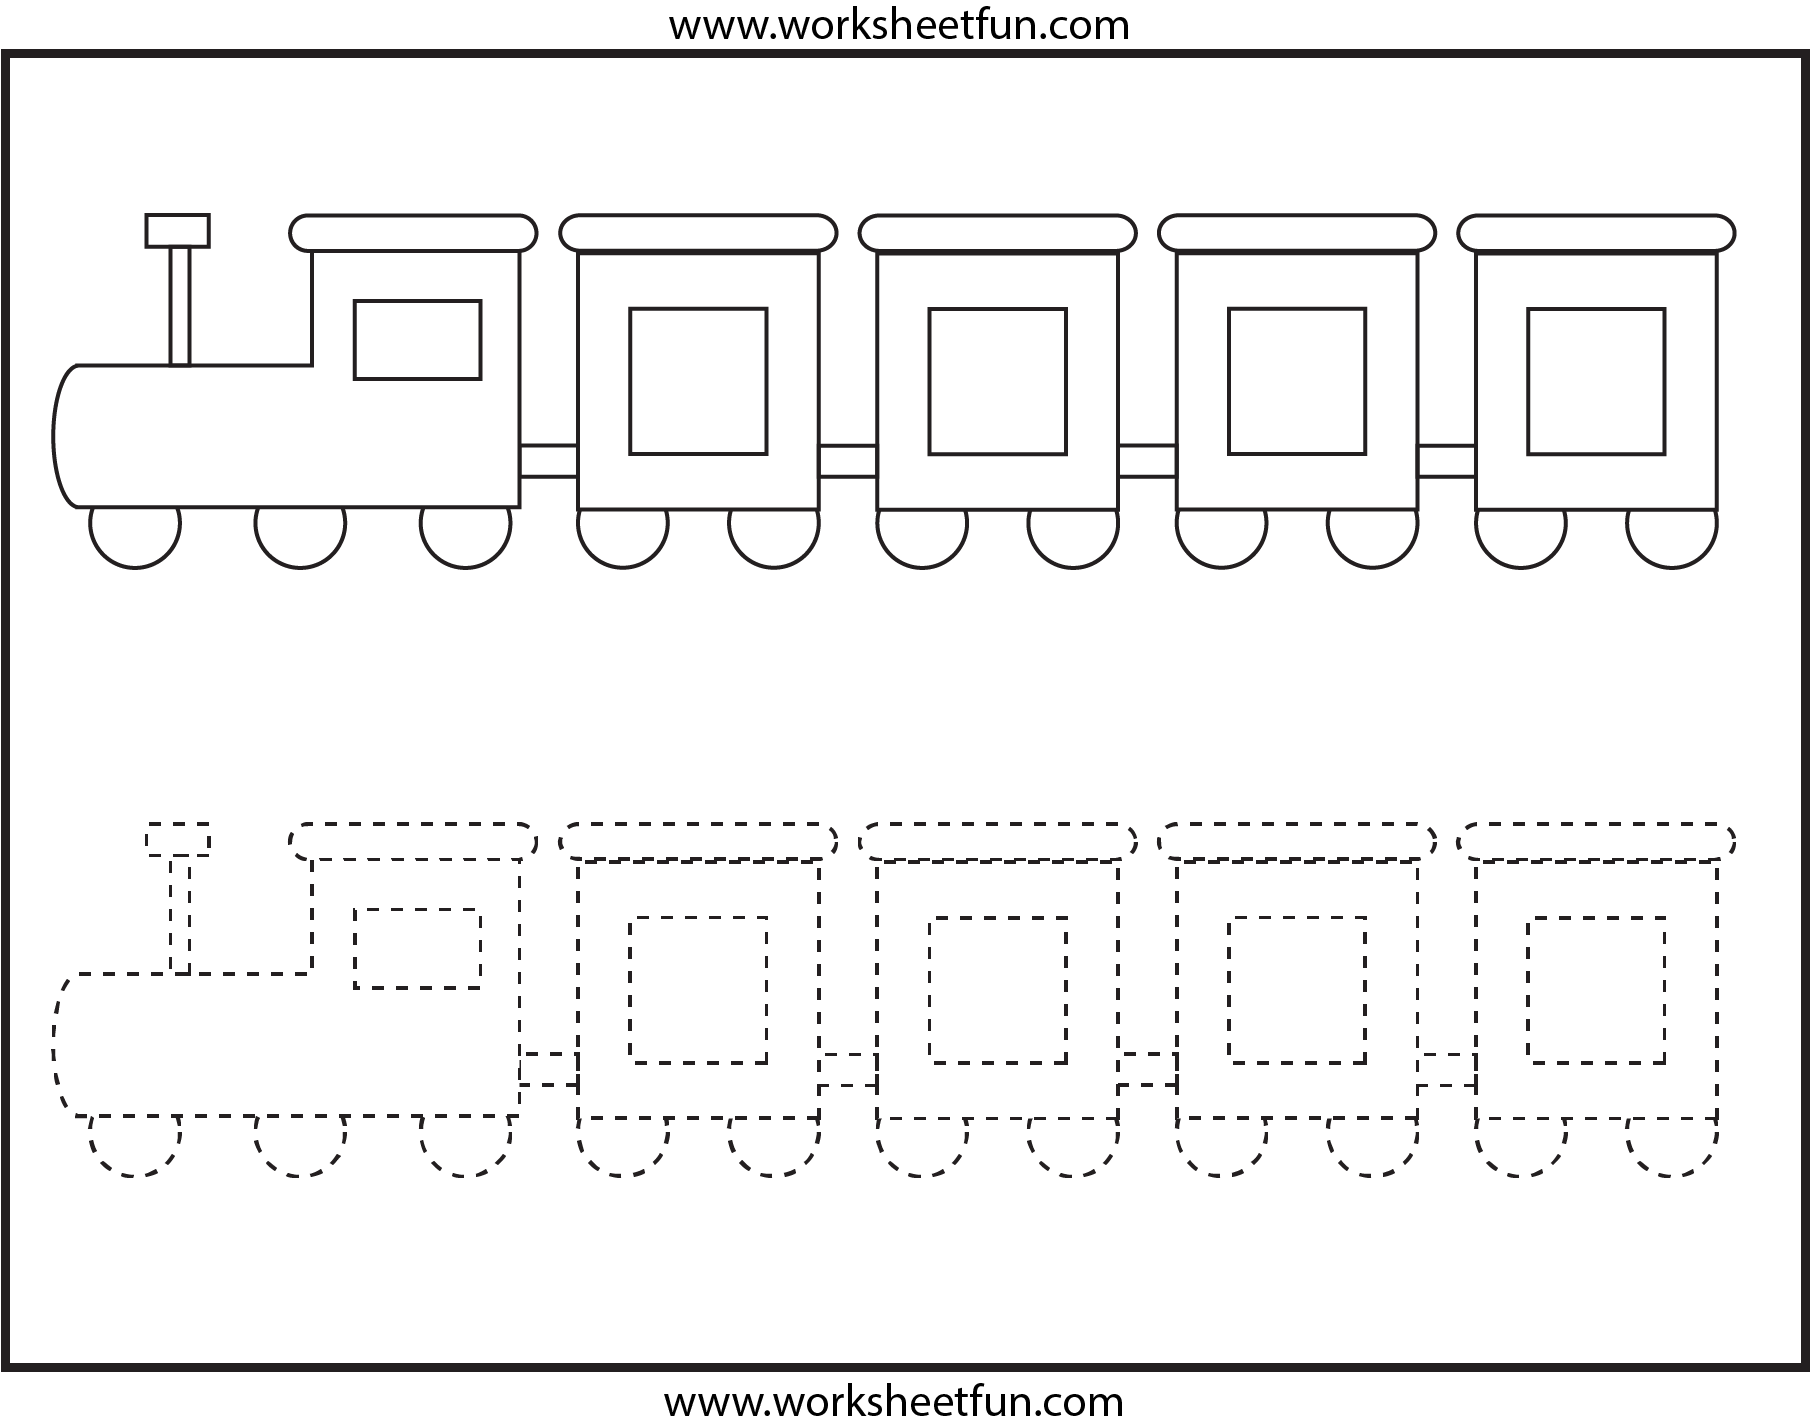 Picture Tracing Train 1 Worksheet Free Printable